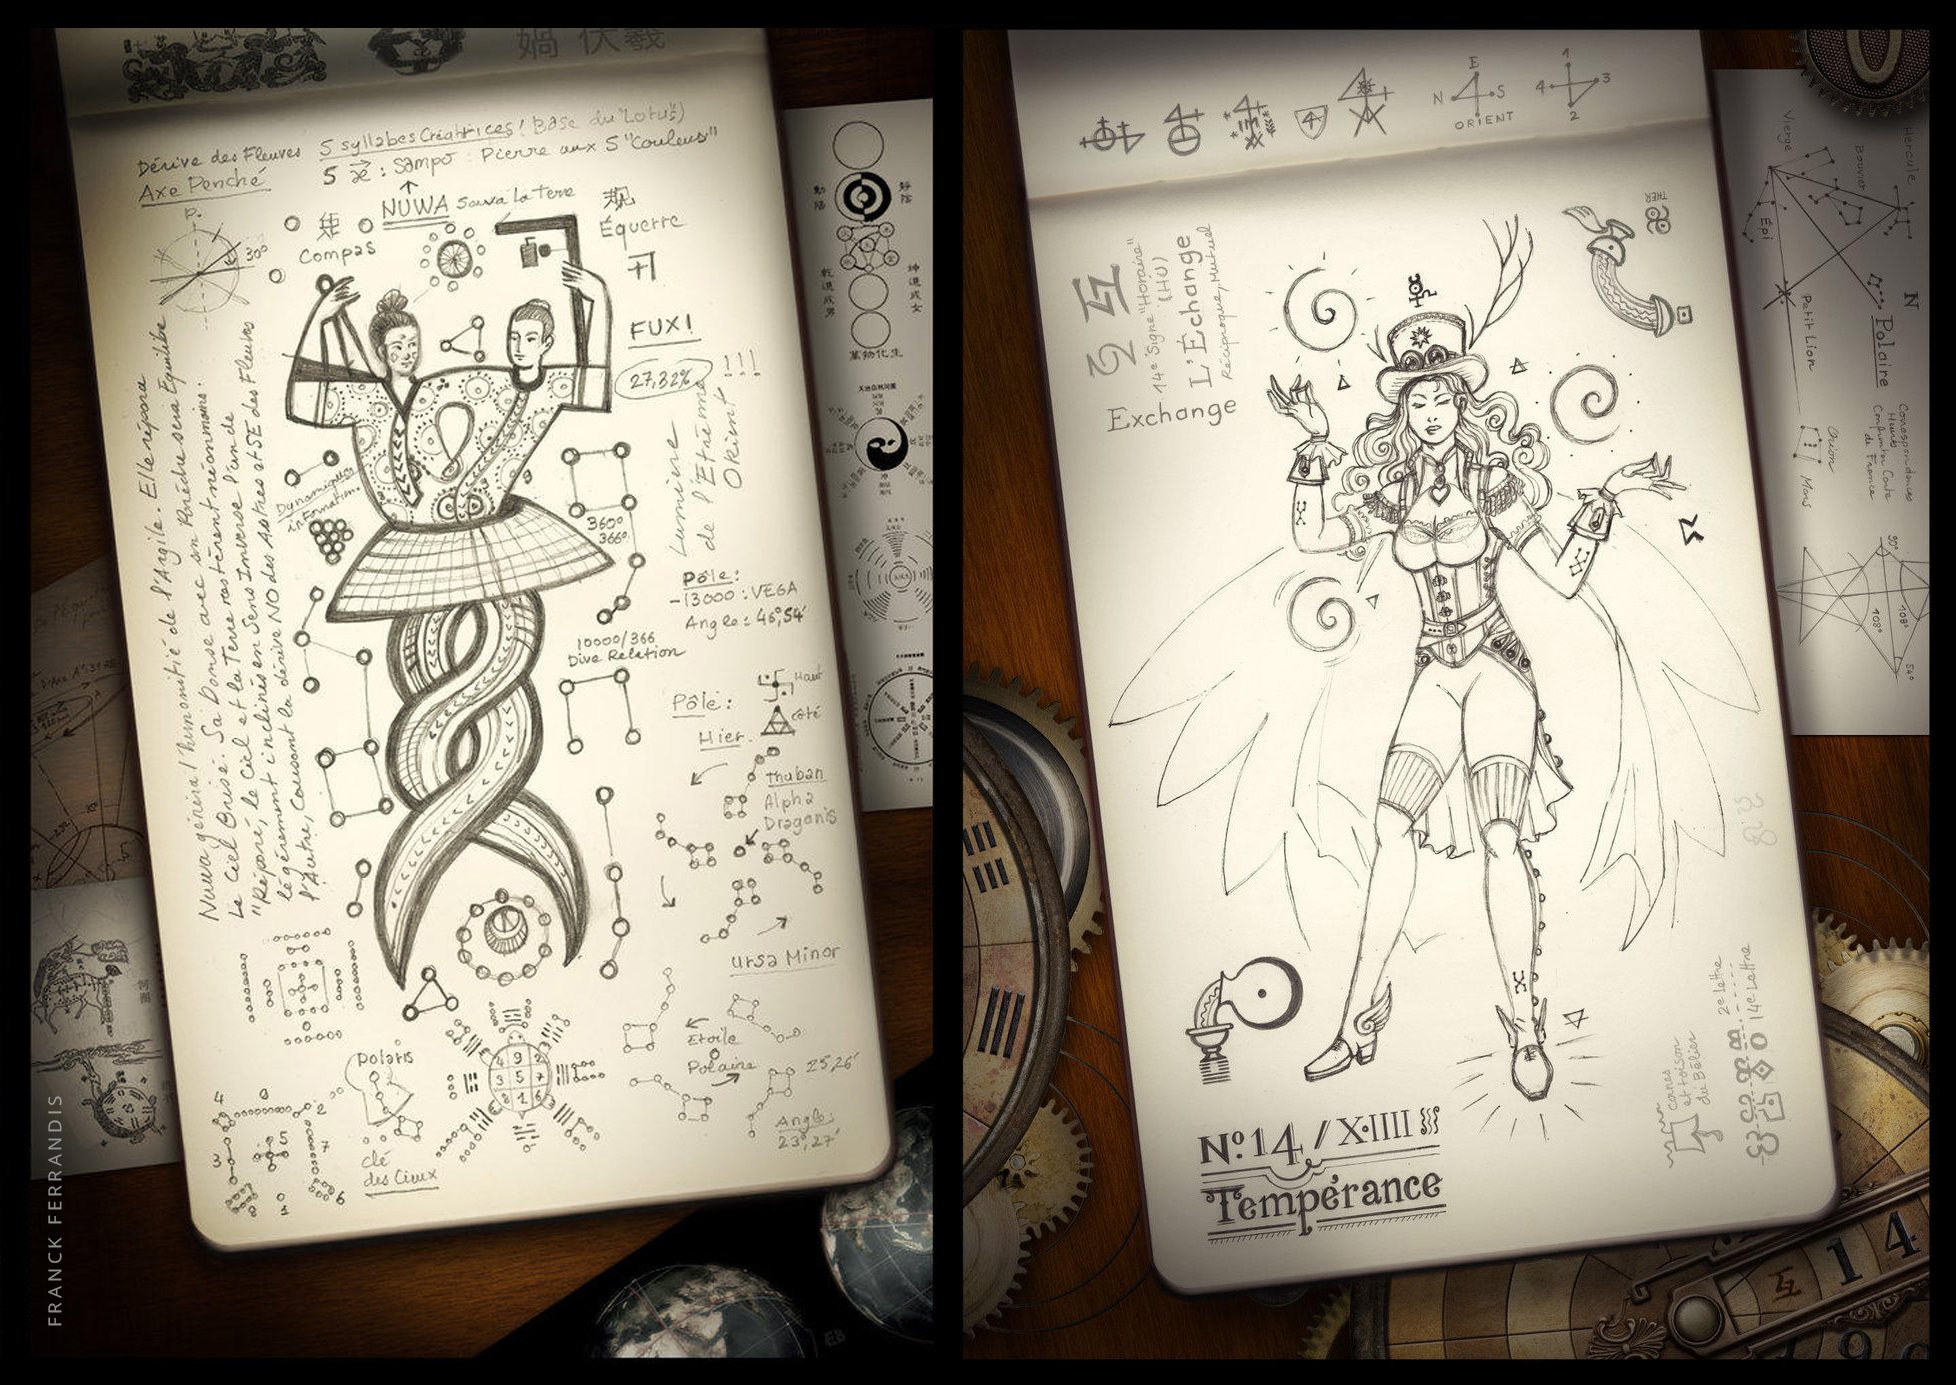 Fuxi & Nuwa – Alchemy Tempérance (very old small classic reporter Moleskine)